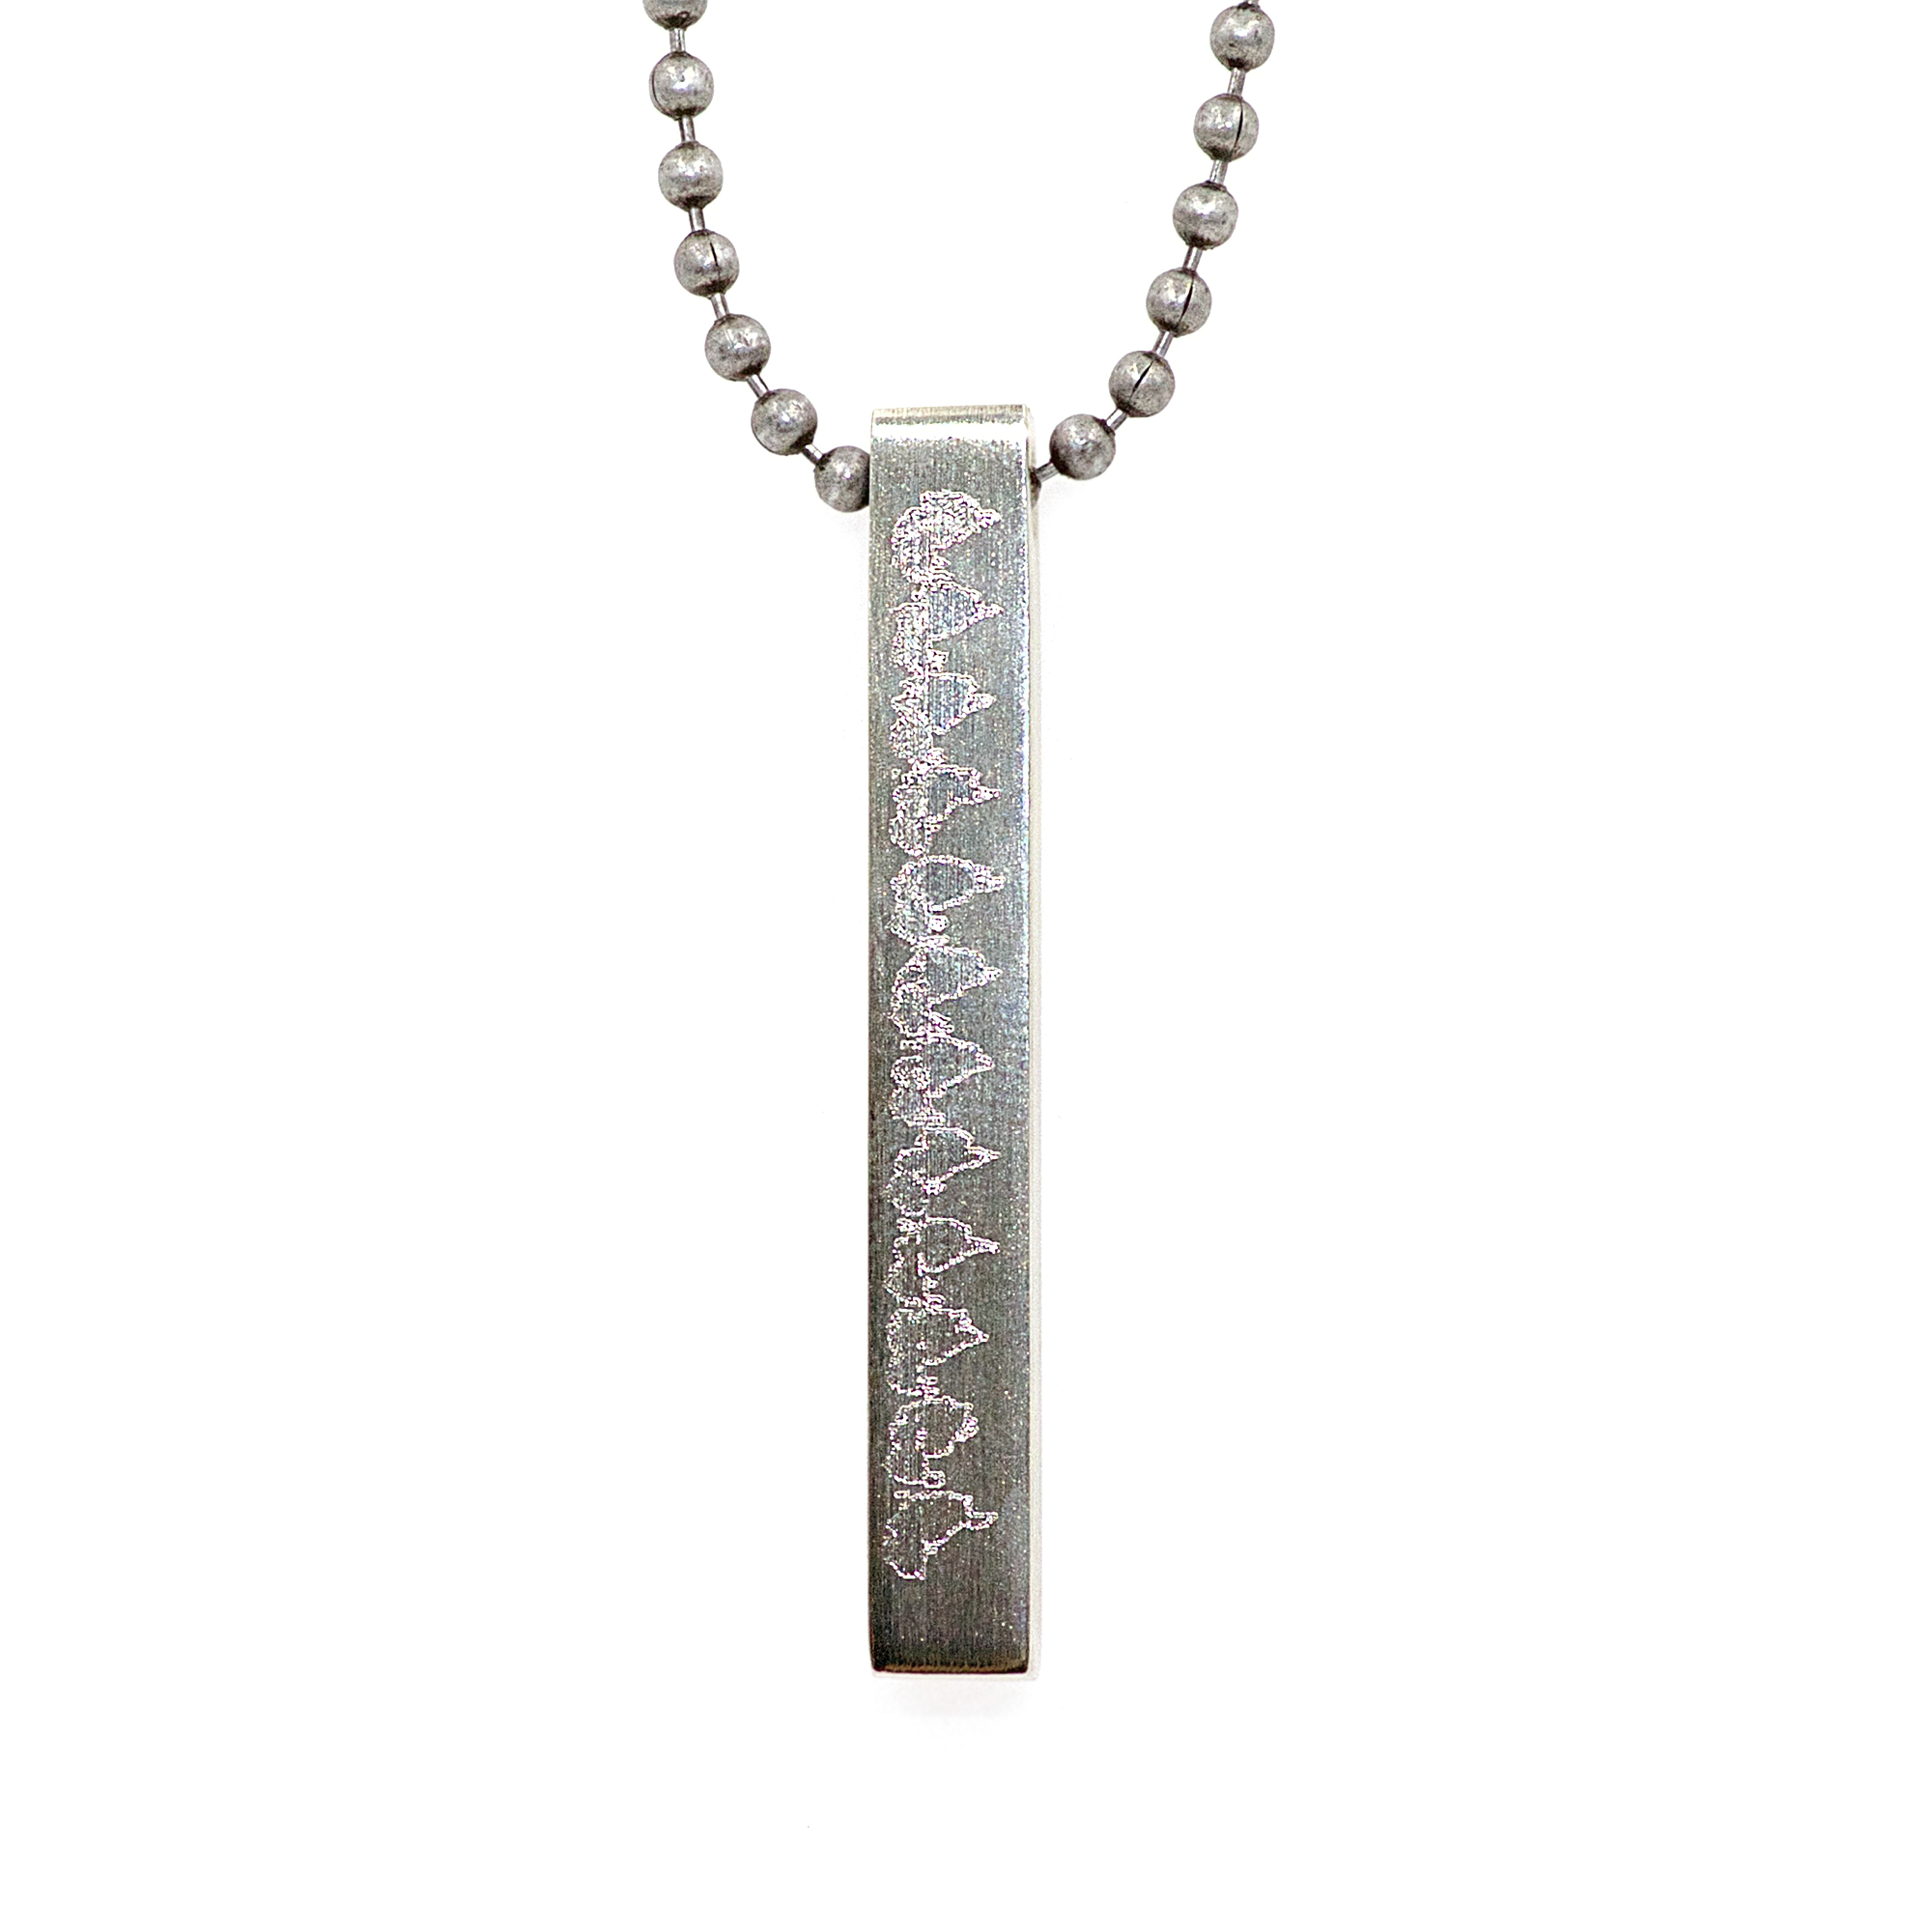 4 Sided Pendant (Front)